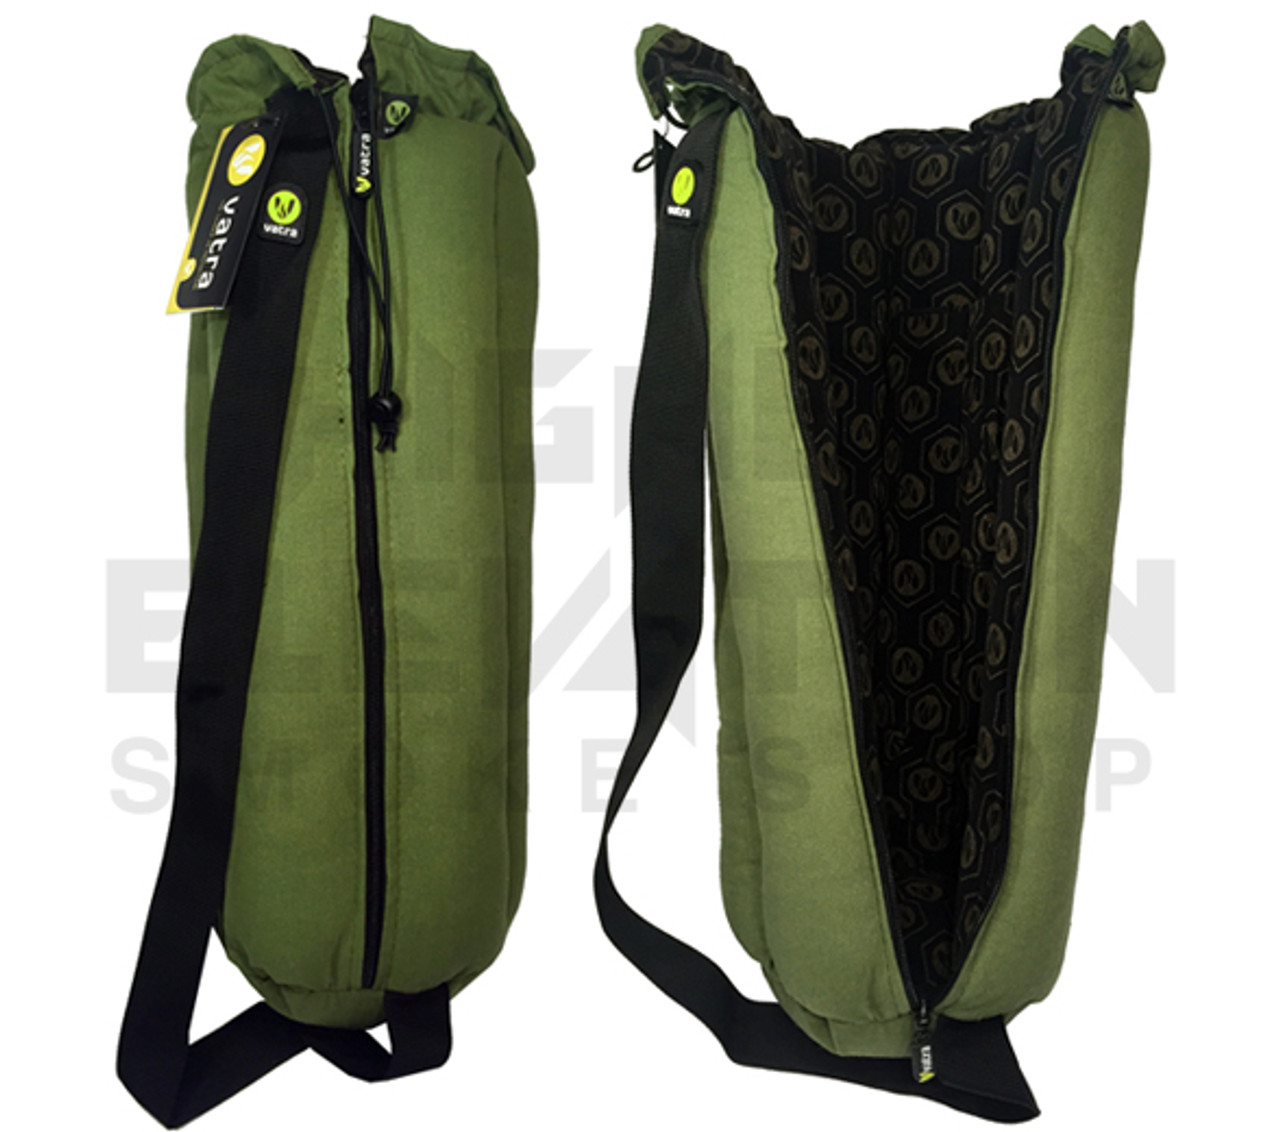 Vatra 18 Green Hemp Waterpipe Pipe Case Tube Bag Higher Elevation